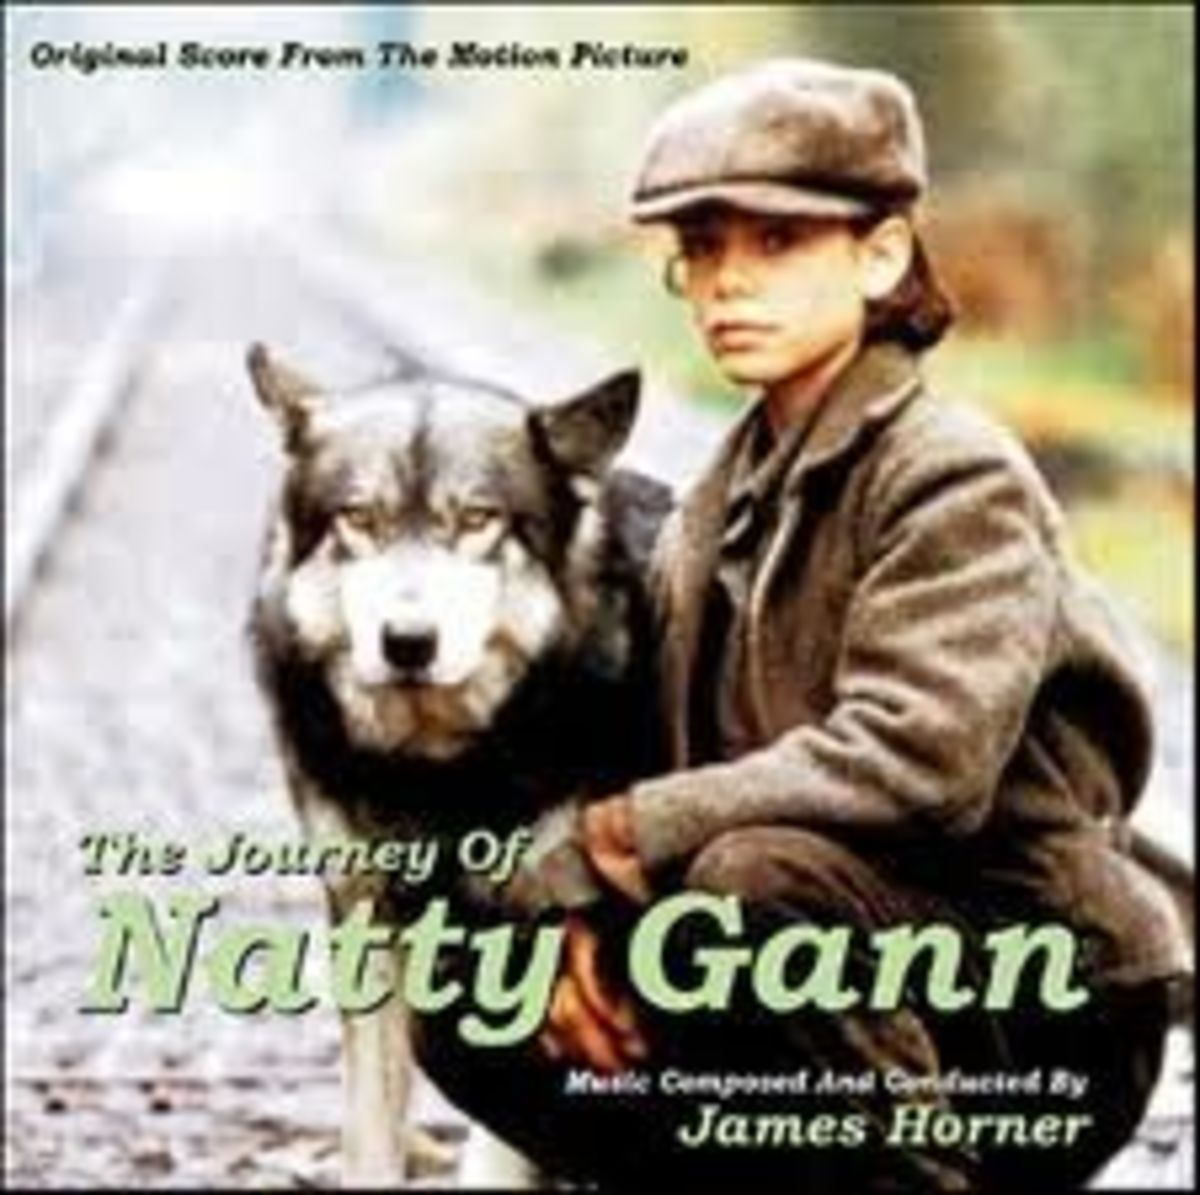 Jed & Natty (Meredith Salenger) in The Journey of Natty Gann